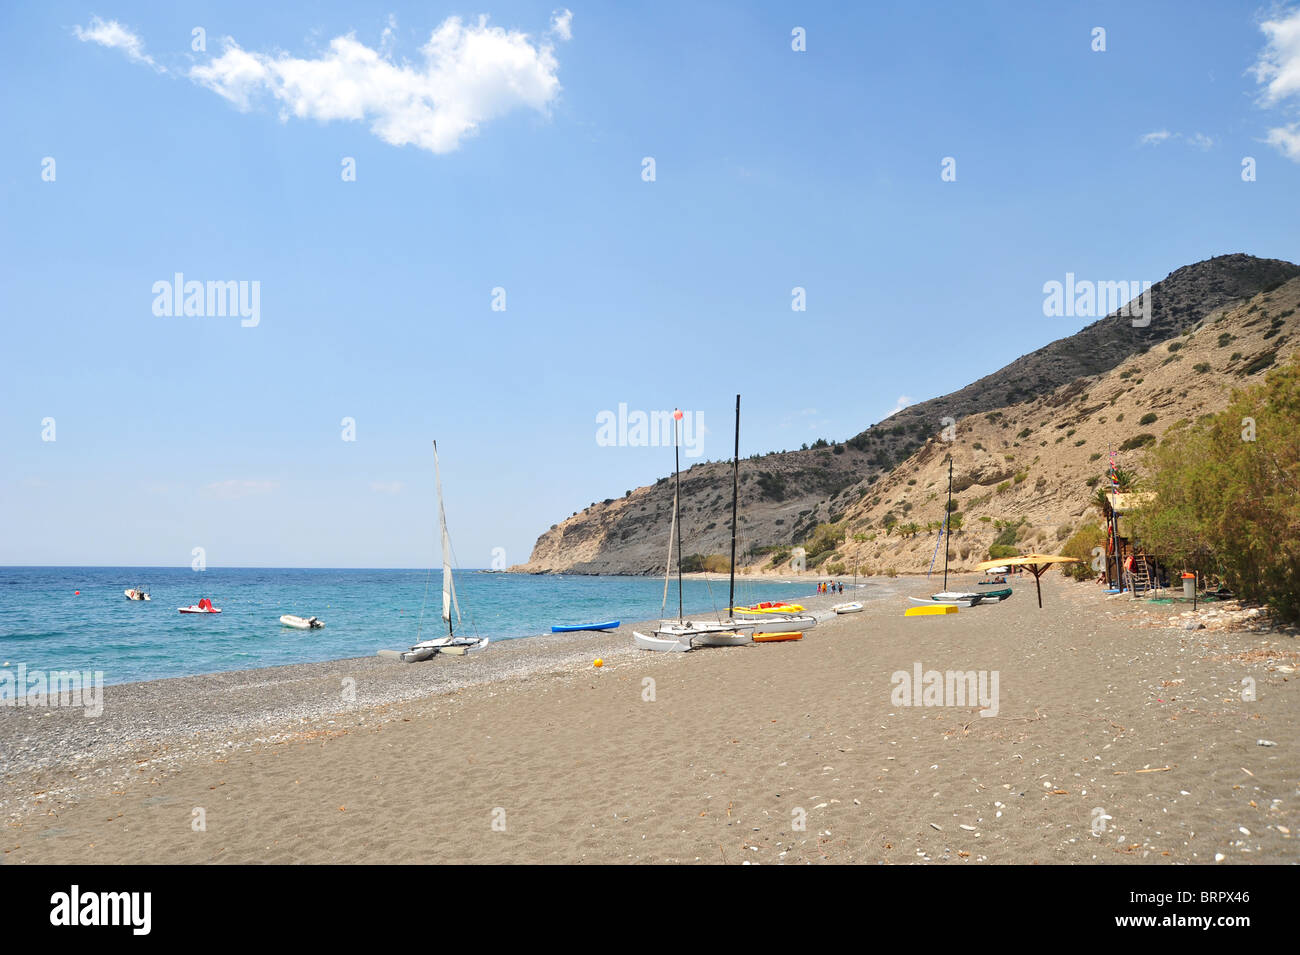 The wide and sandy beach at Mirtos in Southern Crete, Greece. - Stock Image